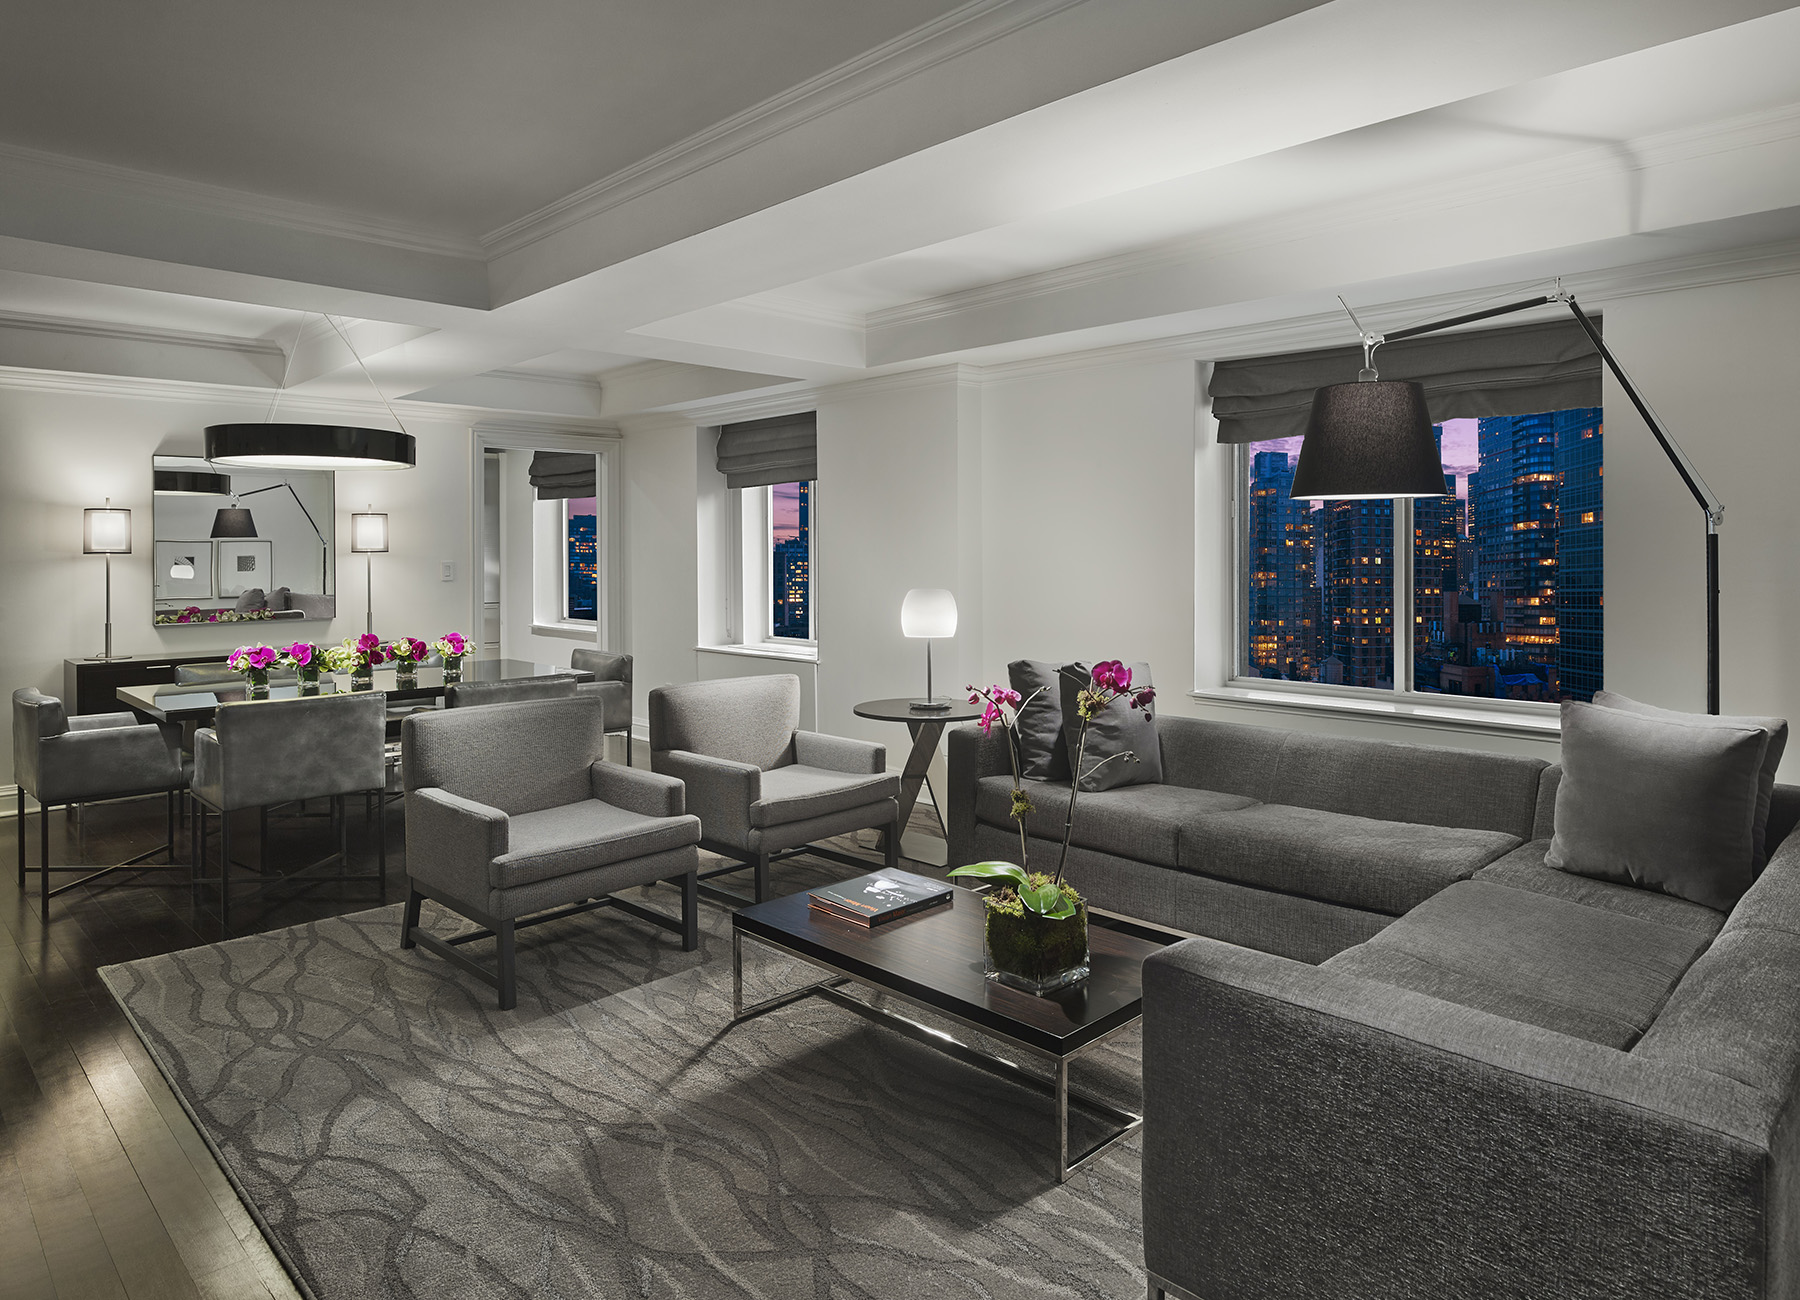 AKA Sutton Place Penthouse Living room with gray couch and chairs